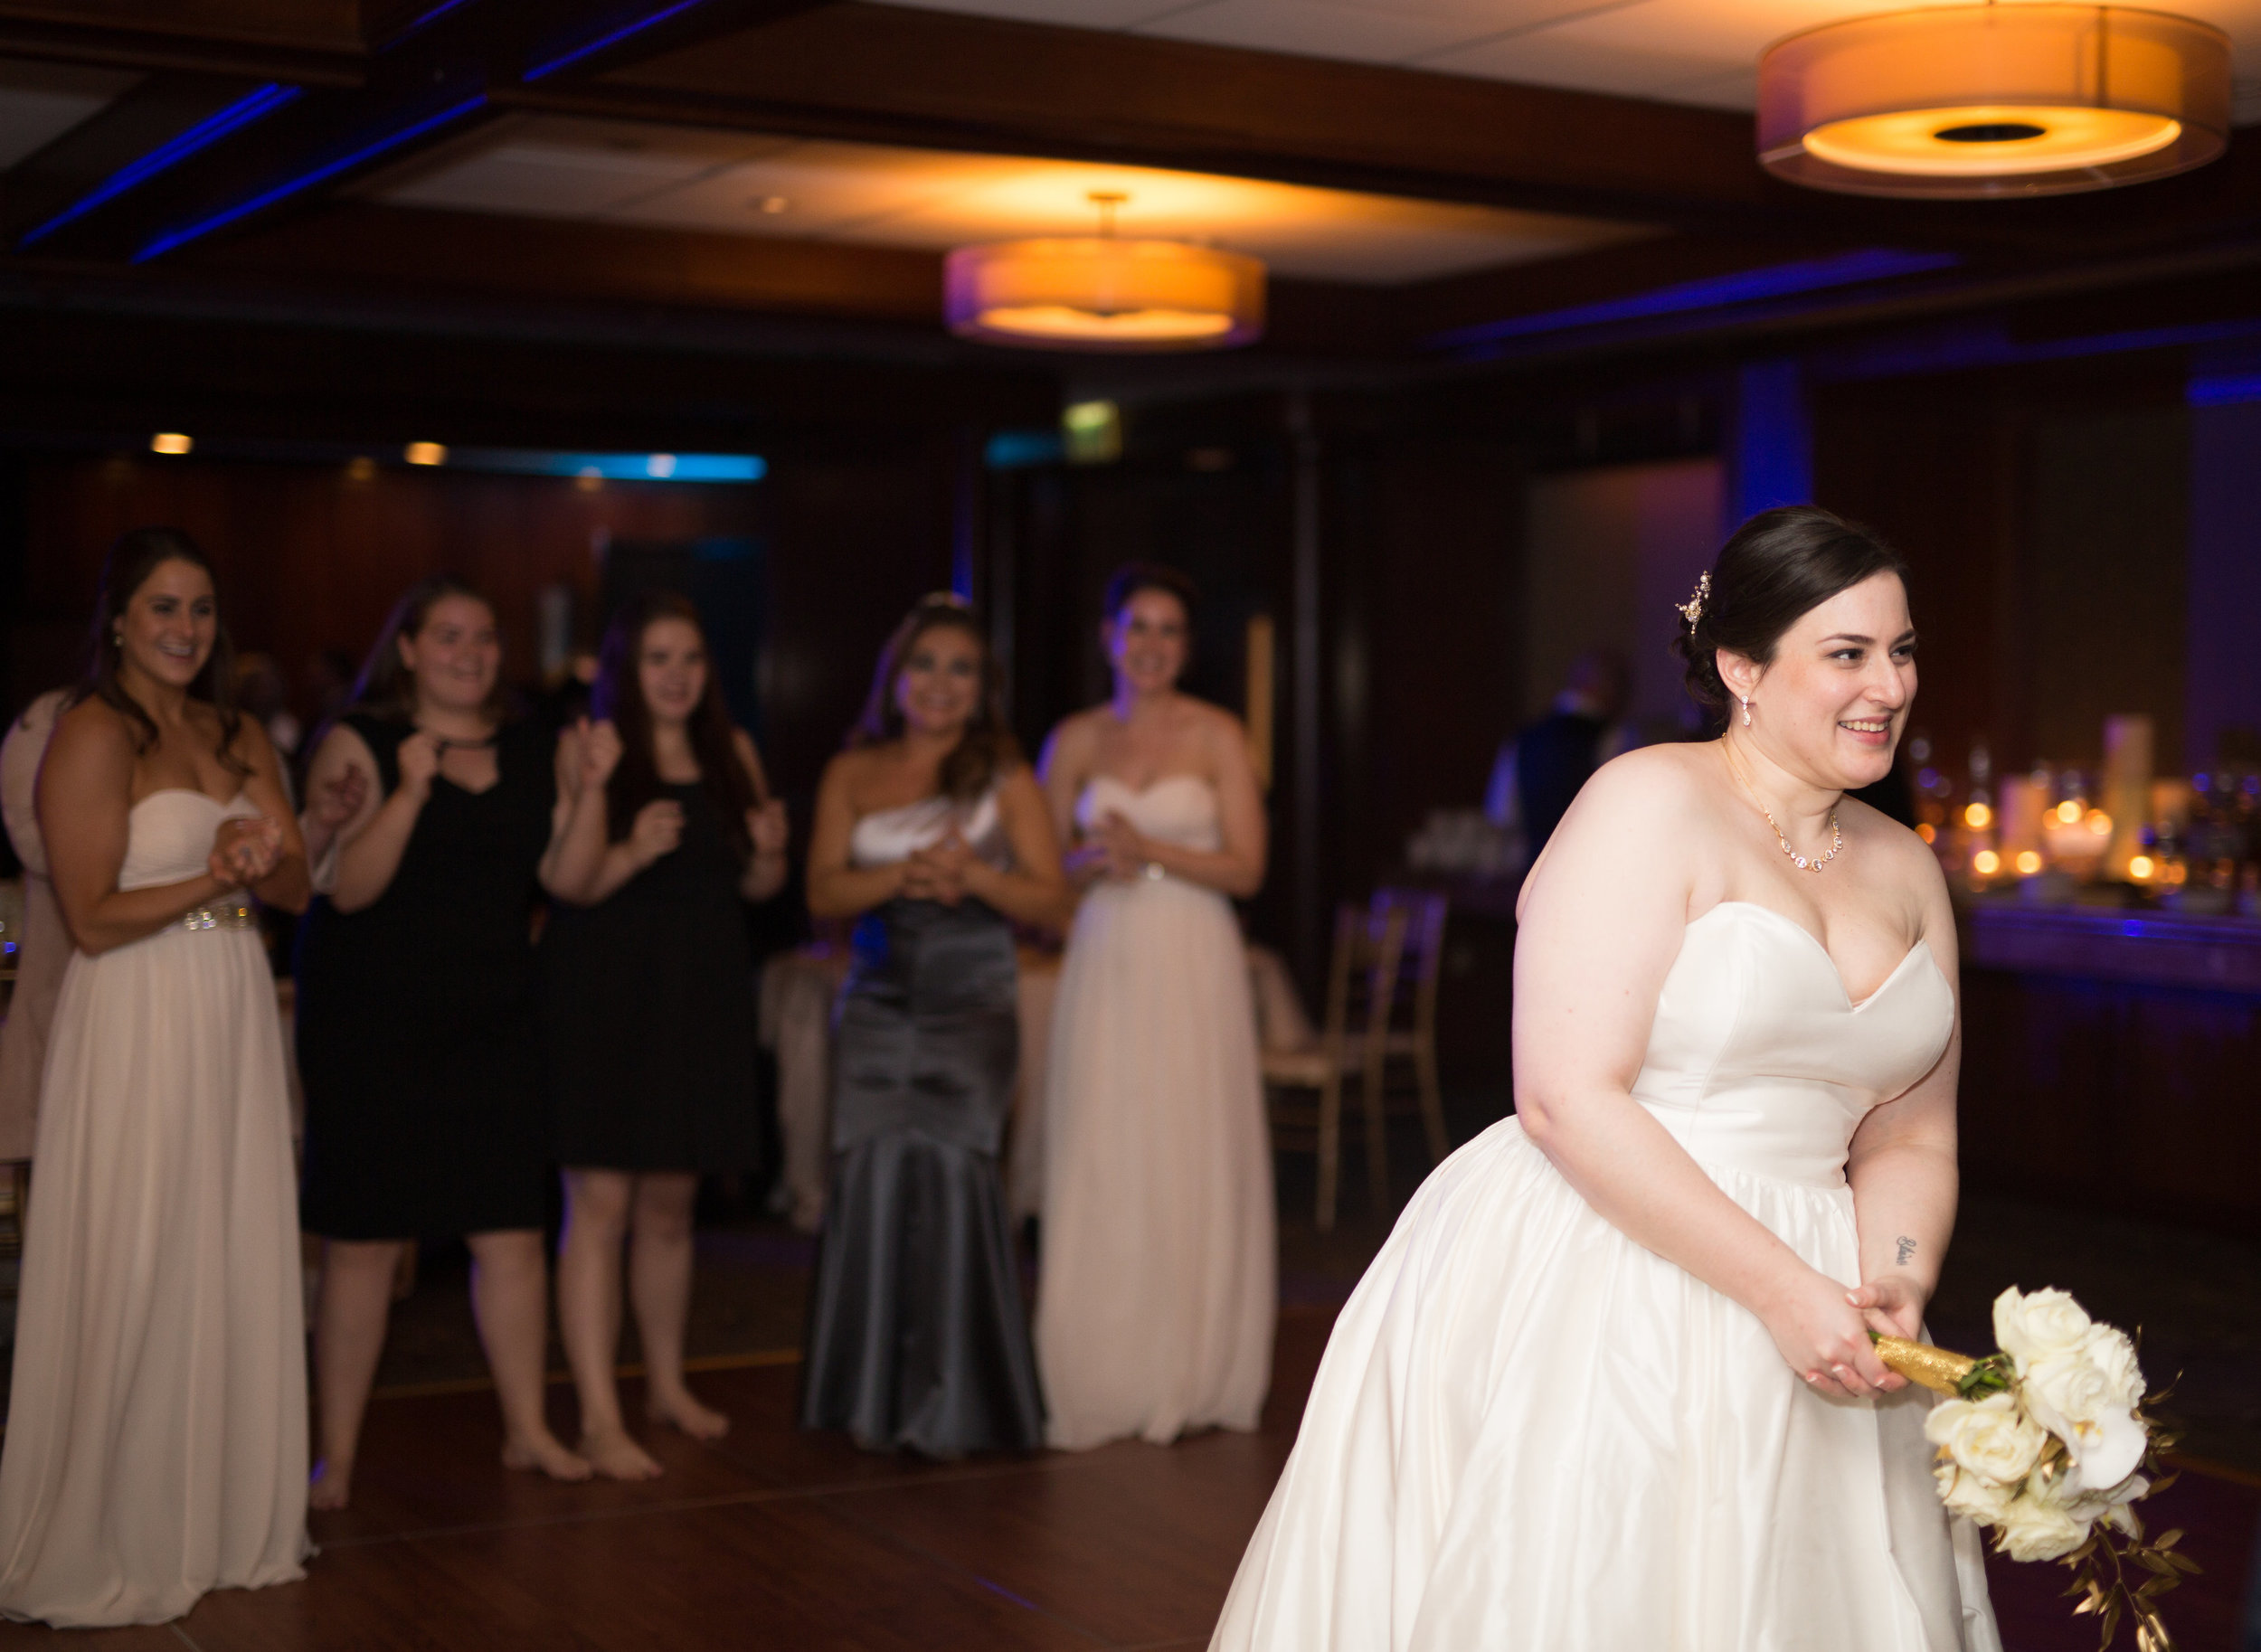 Center Club Wedding by East Made Event Company Baltimore Maryland Fine Art Wedding Planner and Focus Bay Photography492.jpg